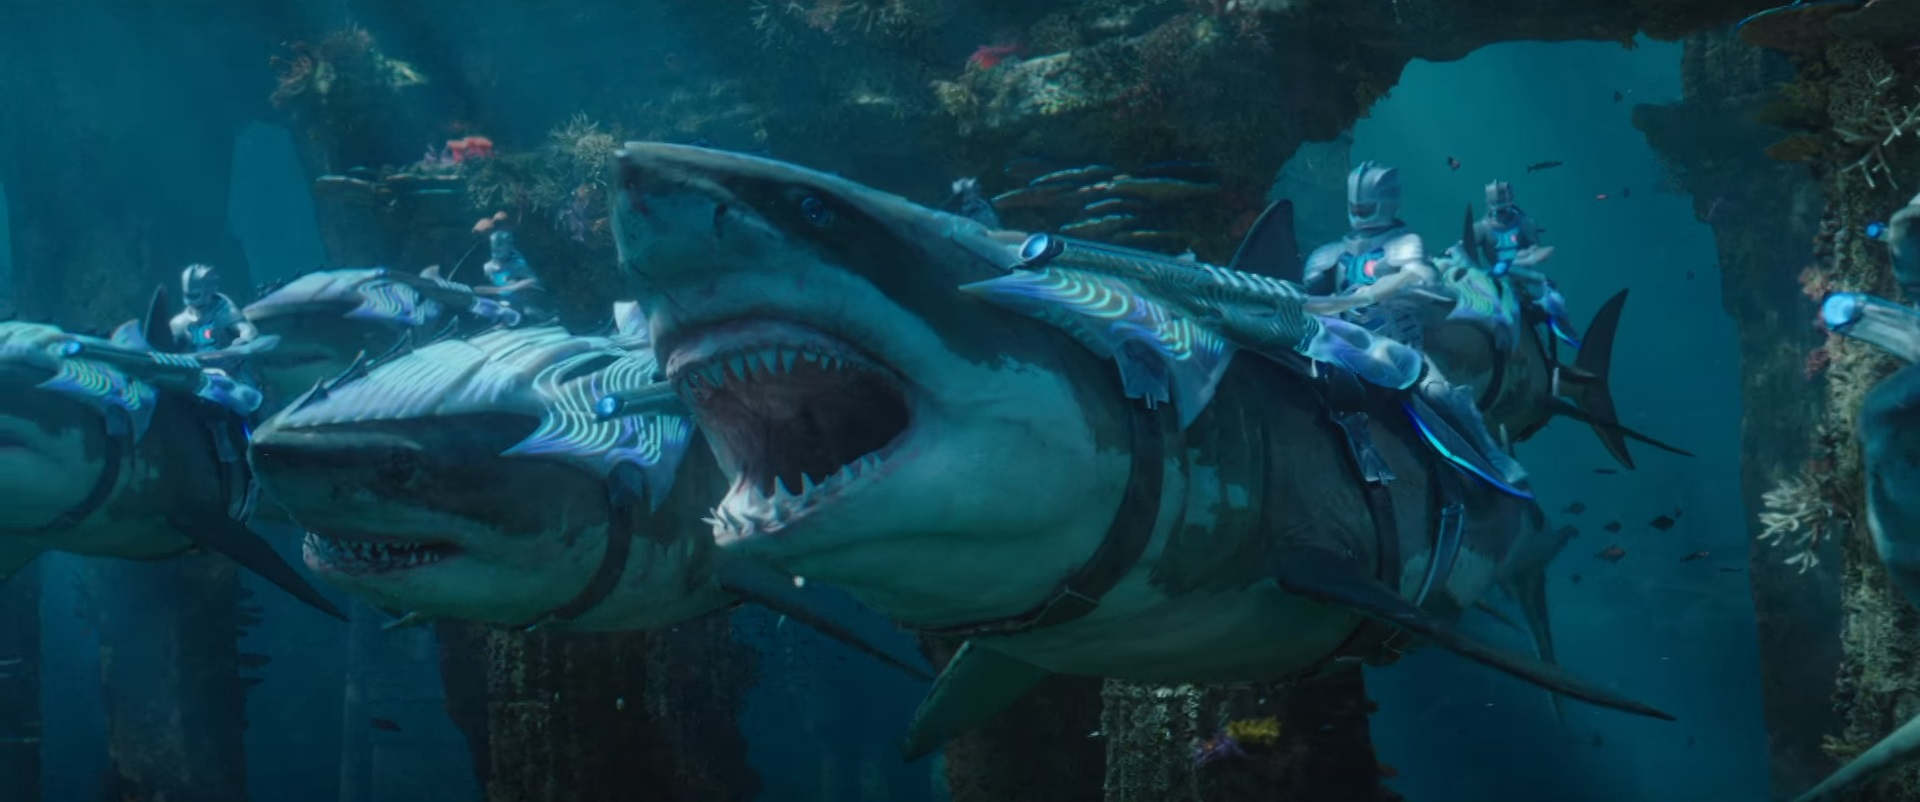 Atlanteans riding Sharks.